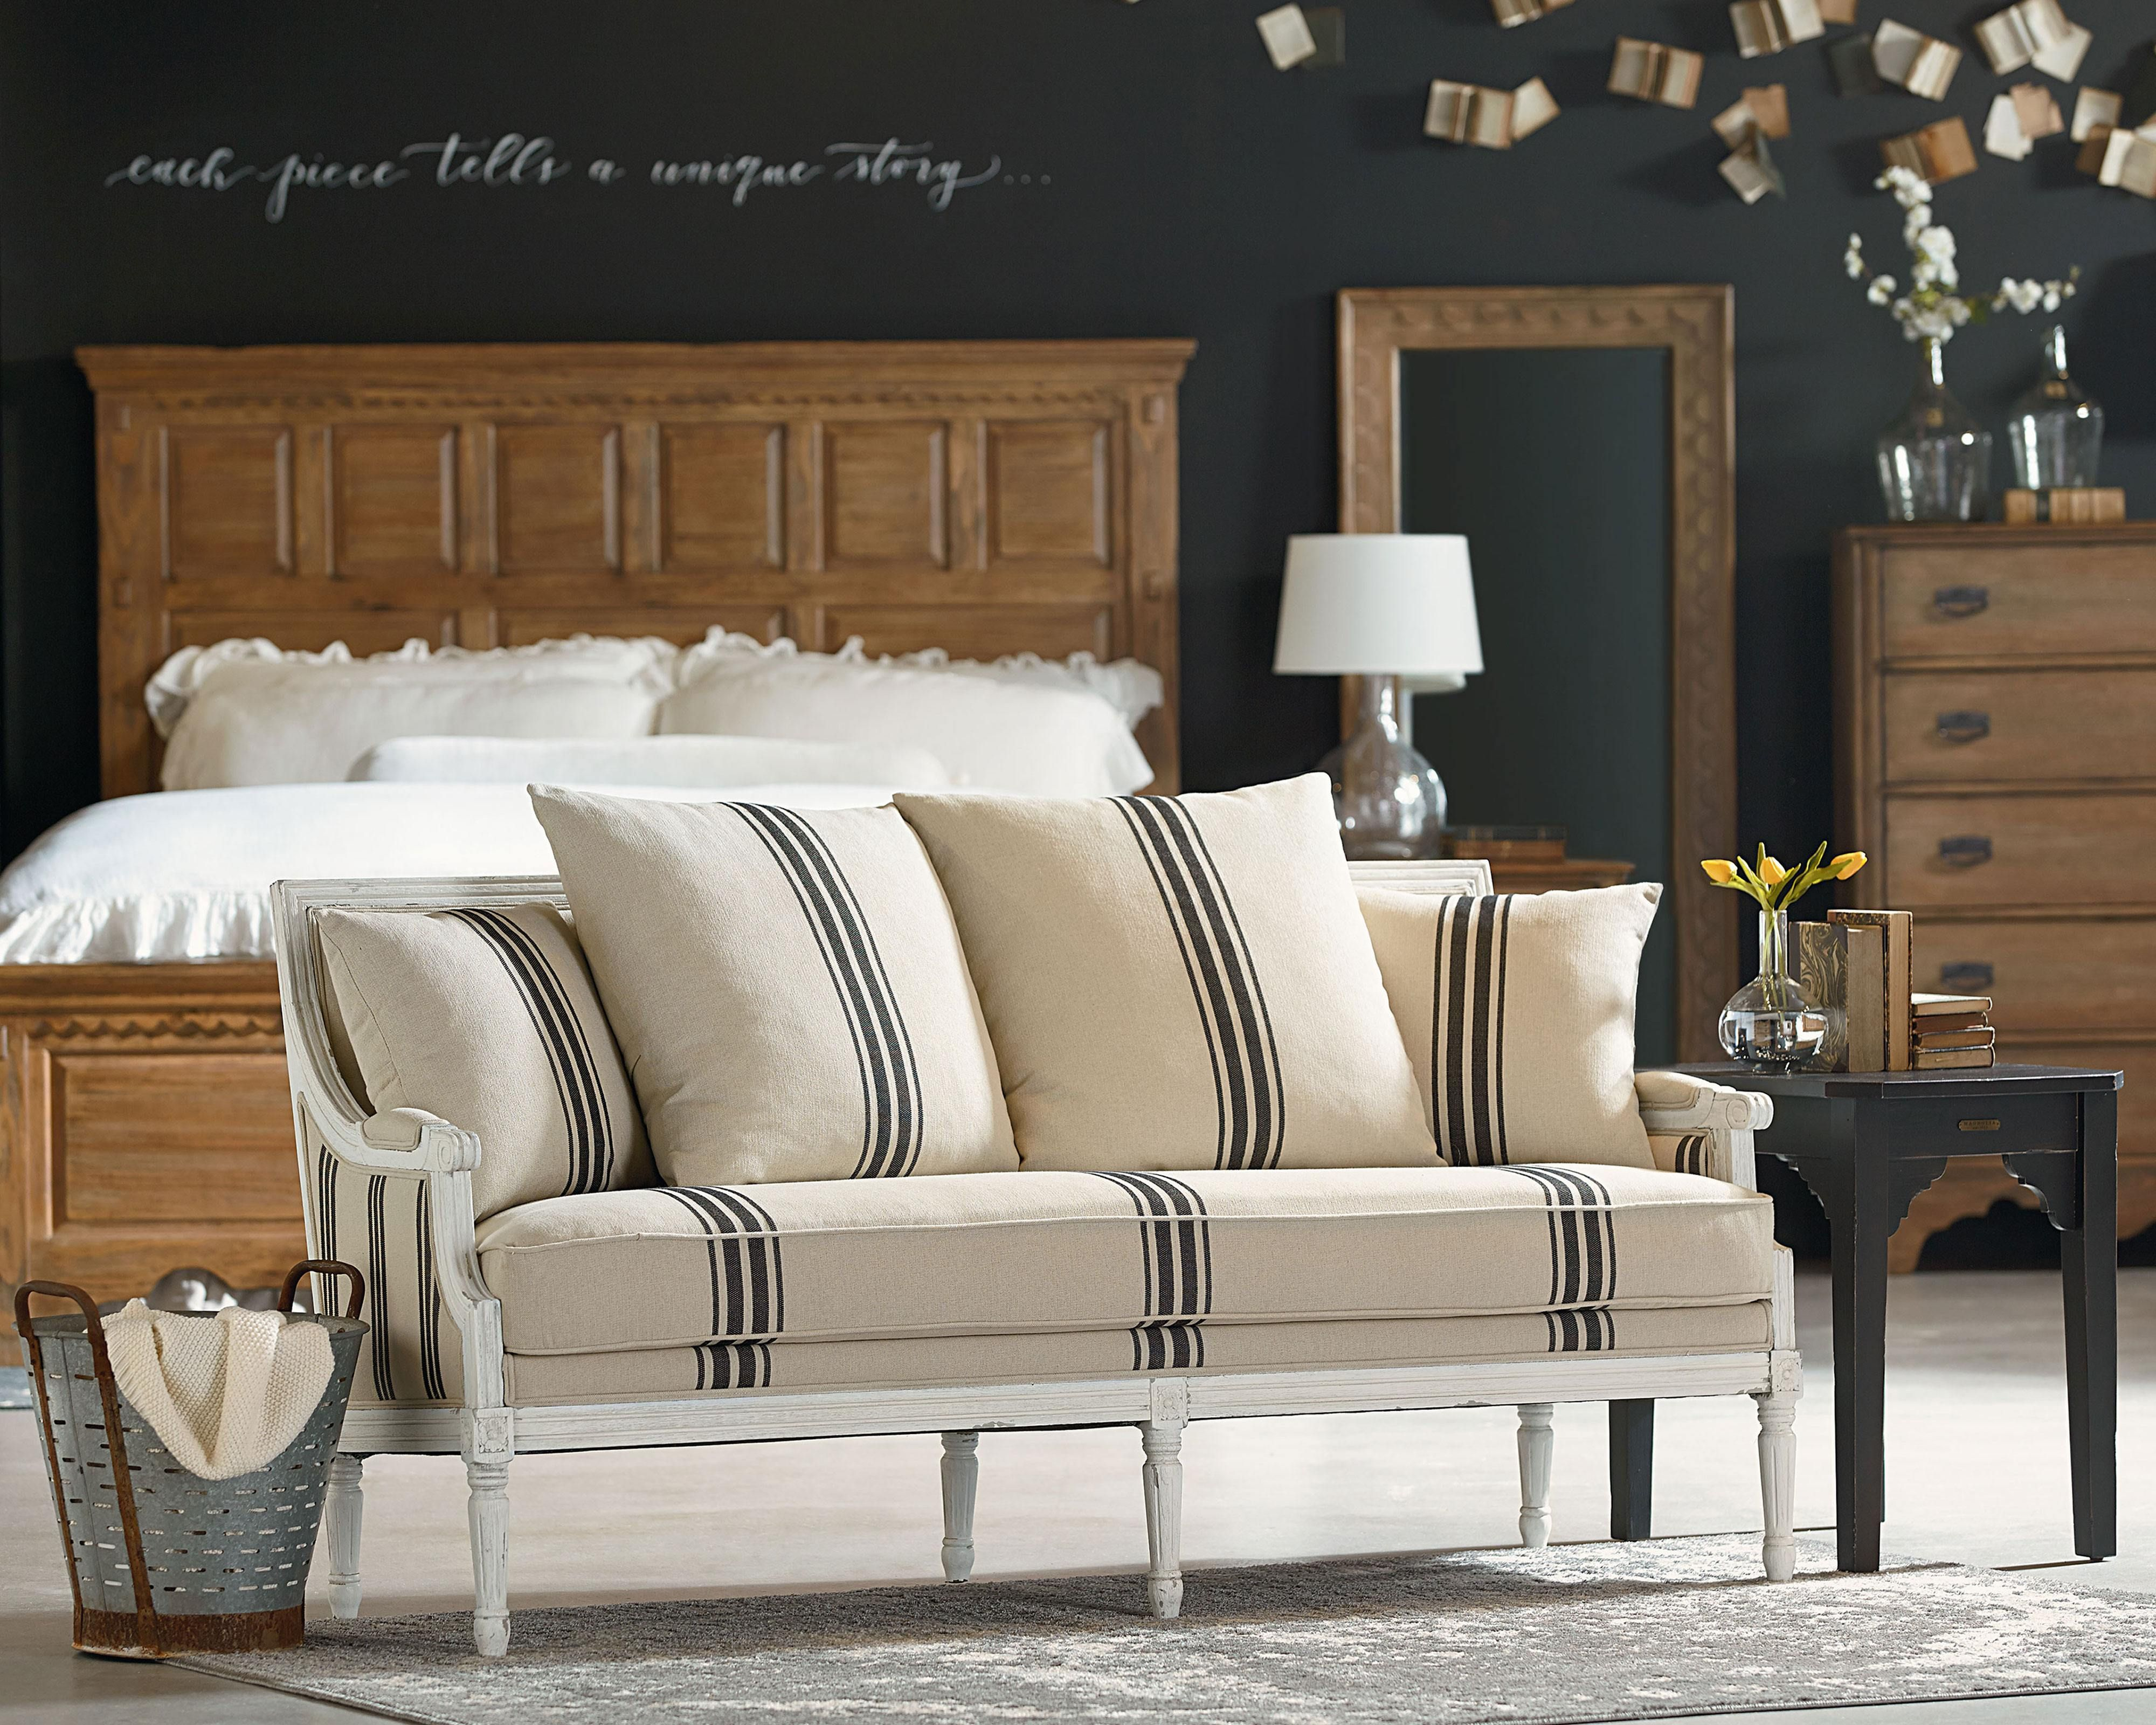 For Magnolia Home Parlor Settee Sofa And Other Living Room Sofas At Star Furniture Tx